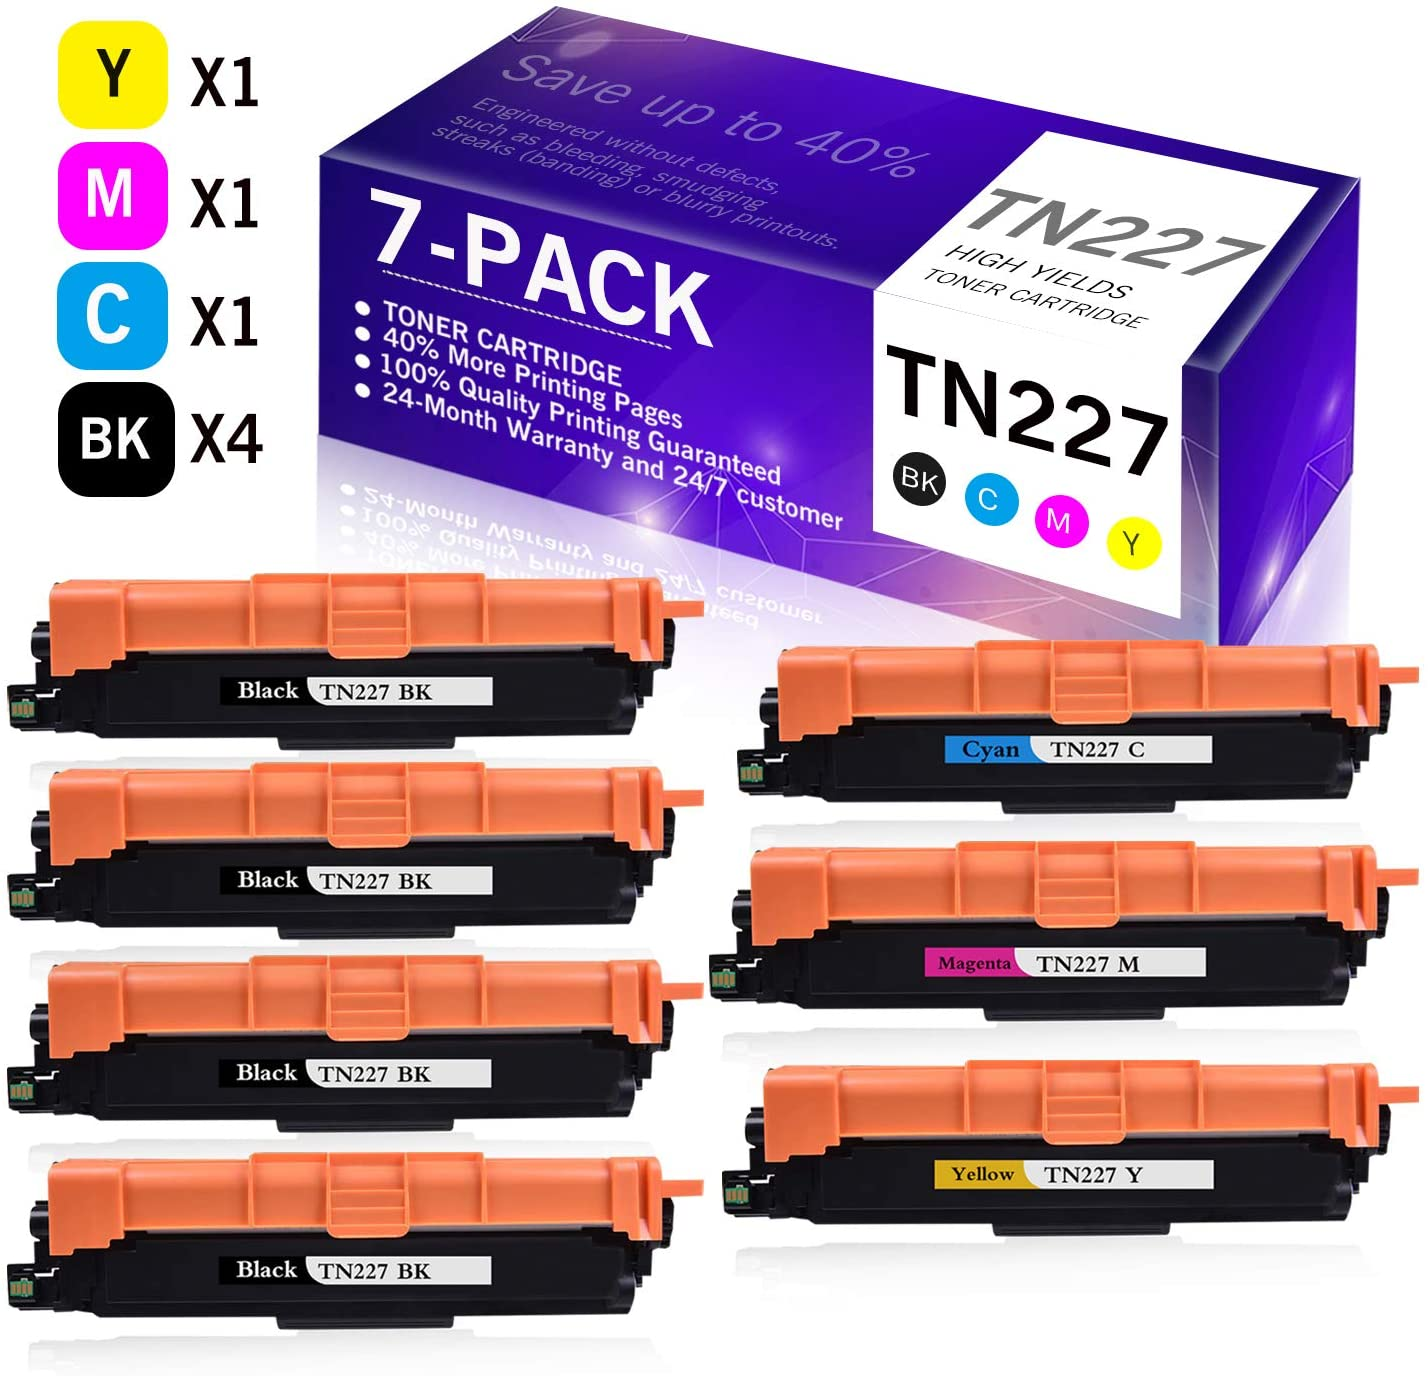 7-Pack(4BK+1C+1M+1Y) Replacement Toner Cartridge Compatible for Brother TN-227 TN227 MFC-L3770CDW MFC-L3730CDW HL-3210CW HL-3230CDW HL-3290CDW DCP-L3510CDW DCP-L3550CDW Printer